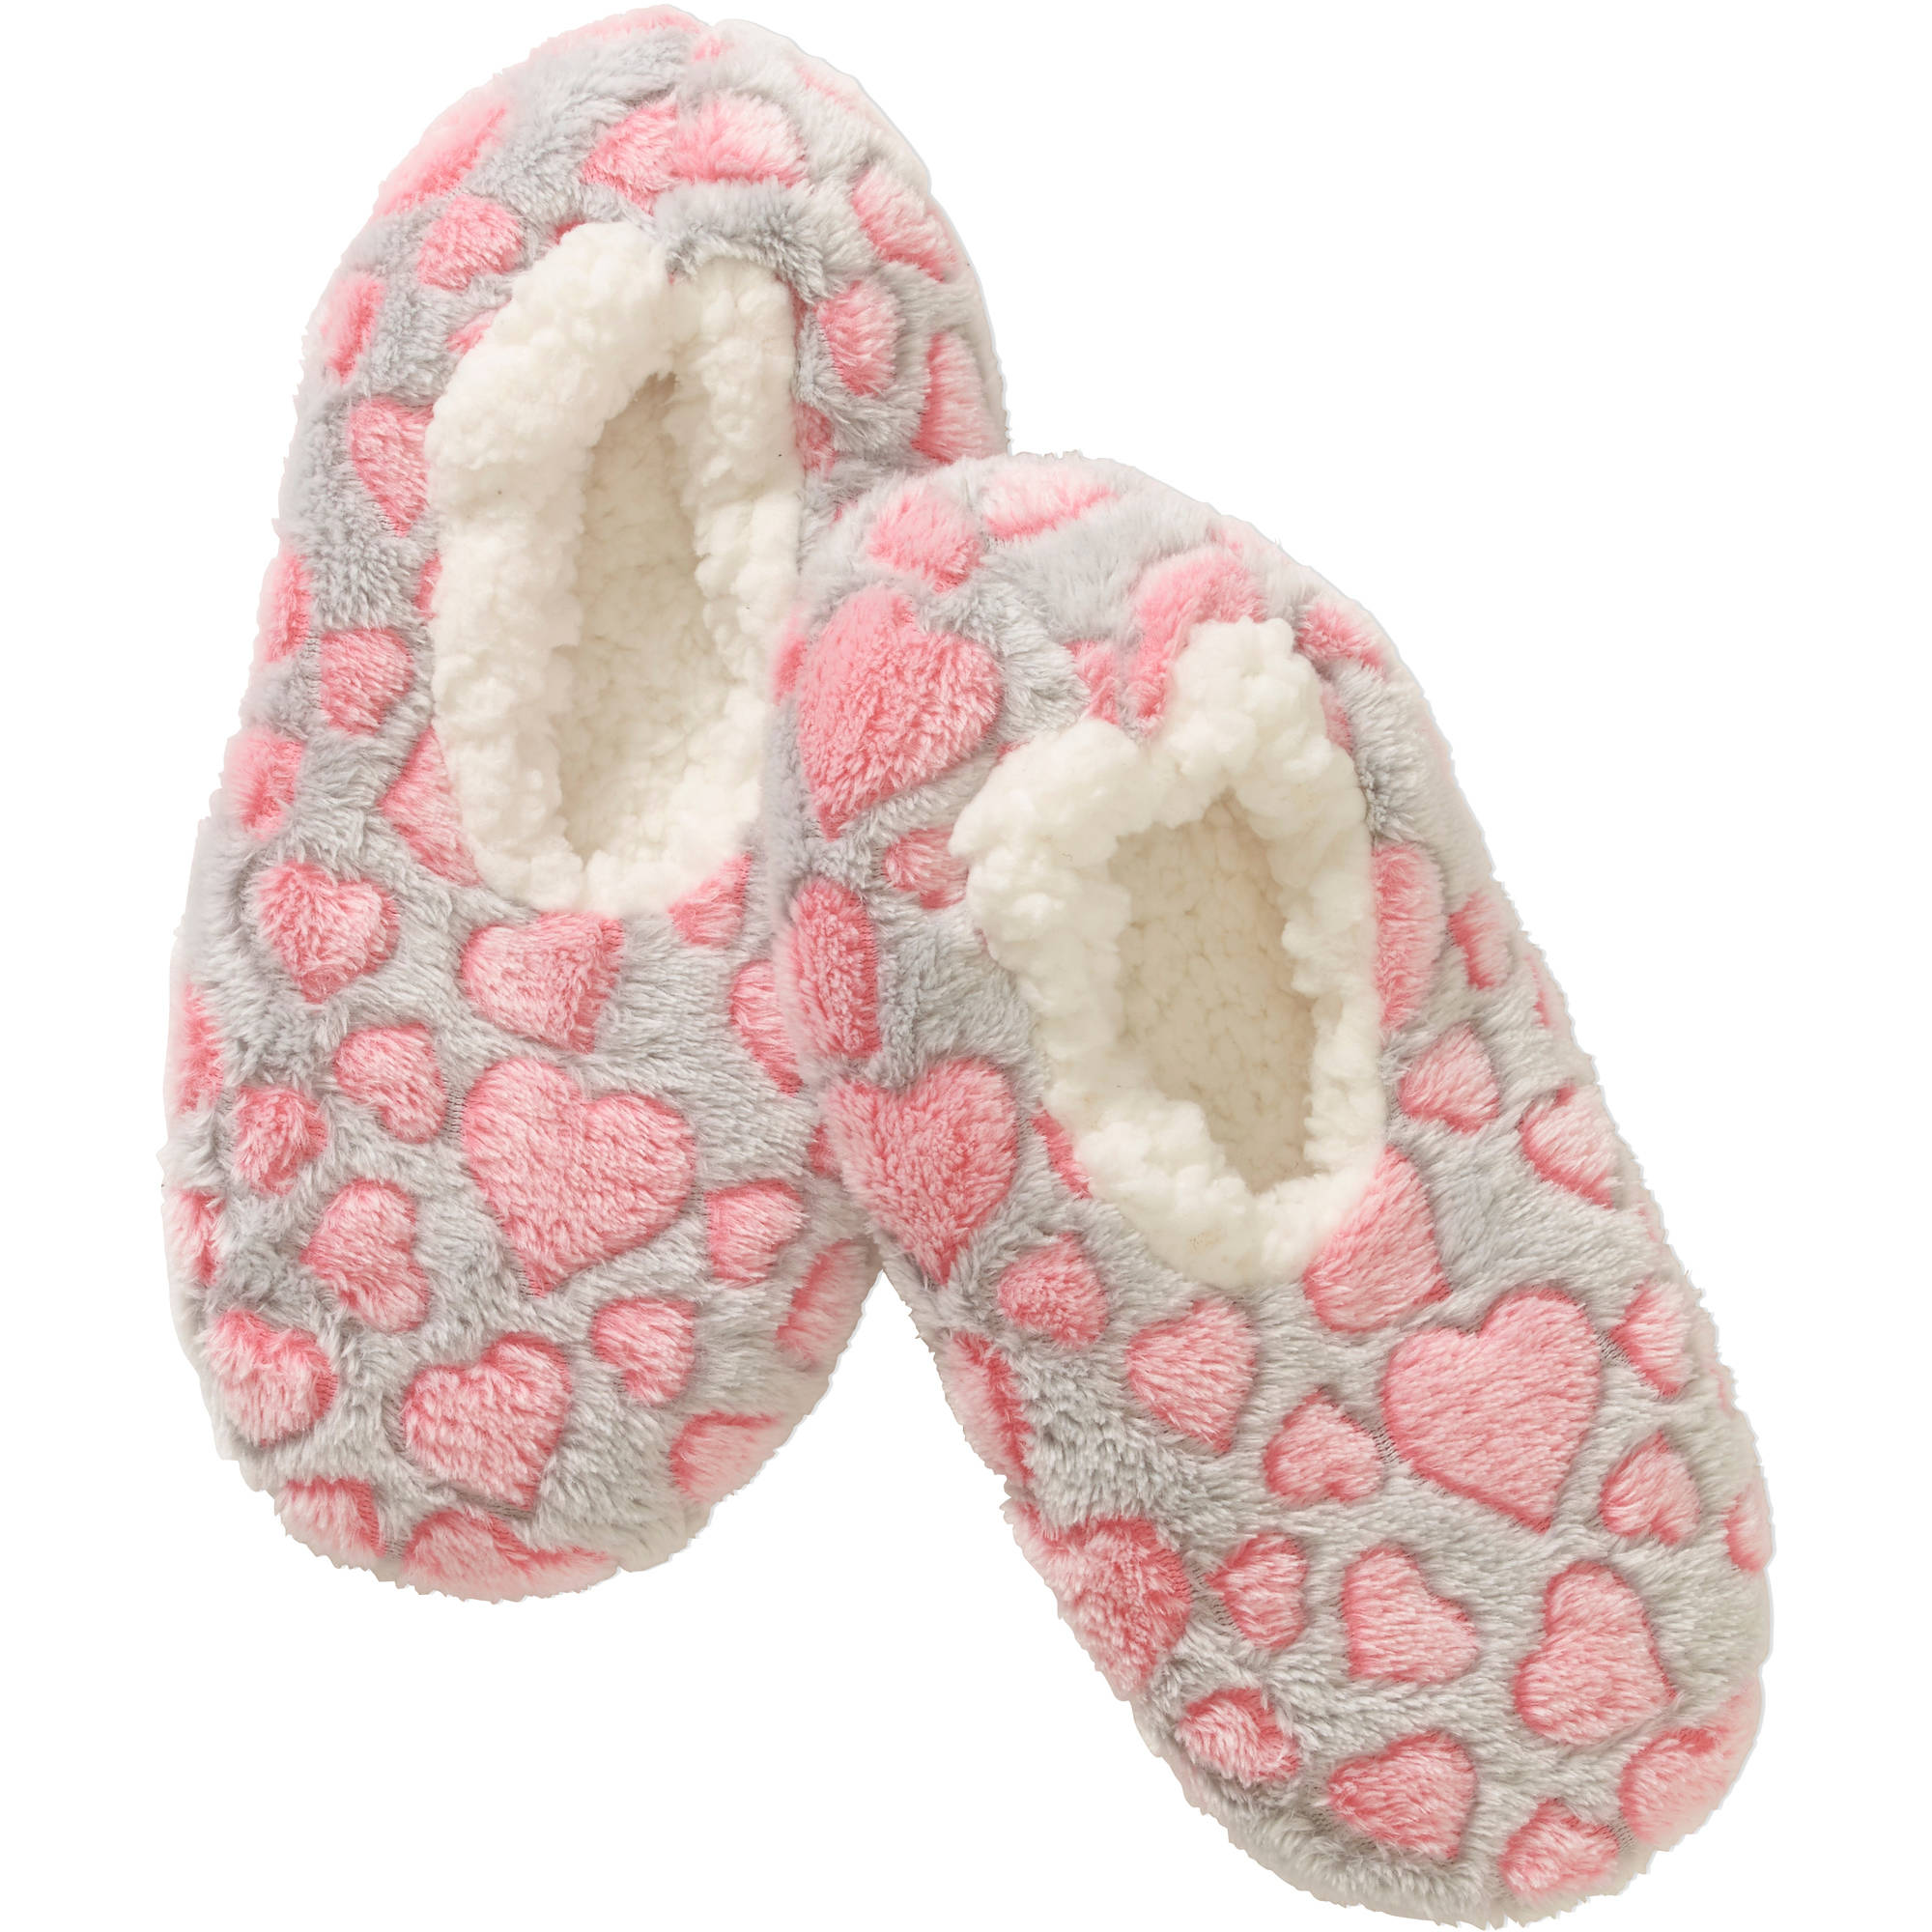 Dreamy Babba Heart Print Glow-in-the-Dark Slipper Socks